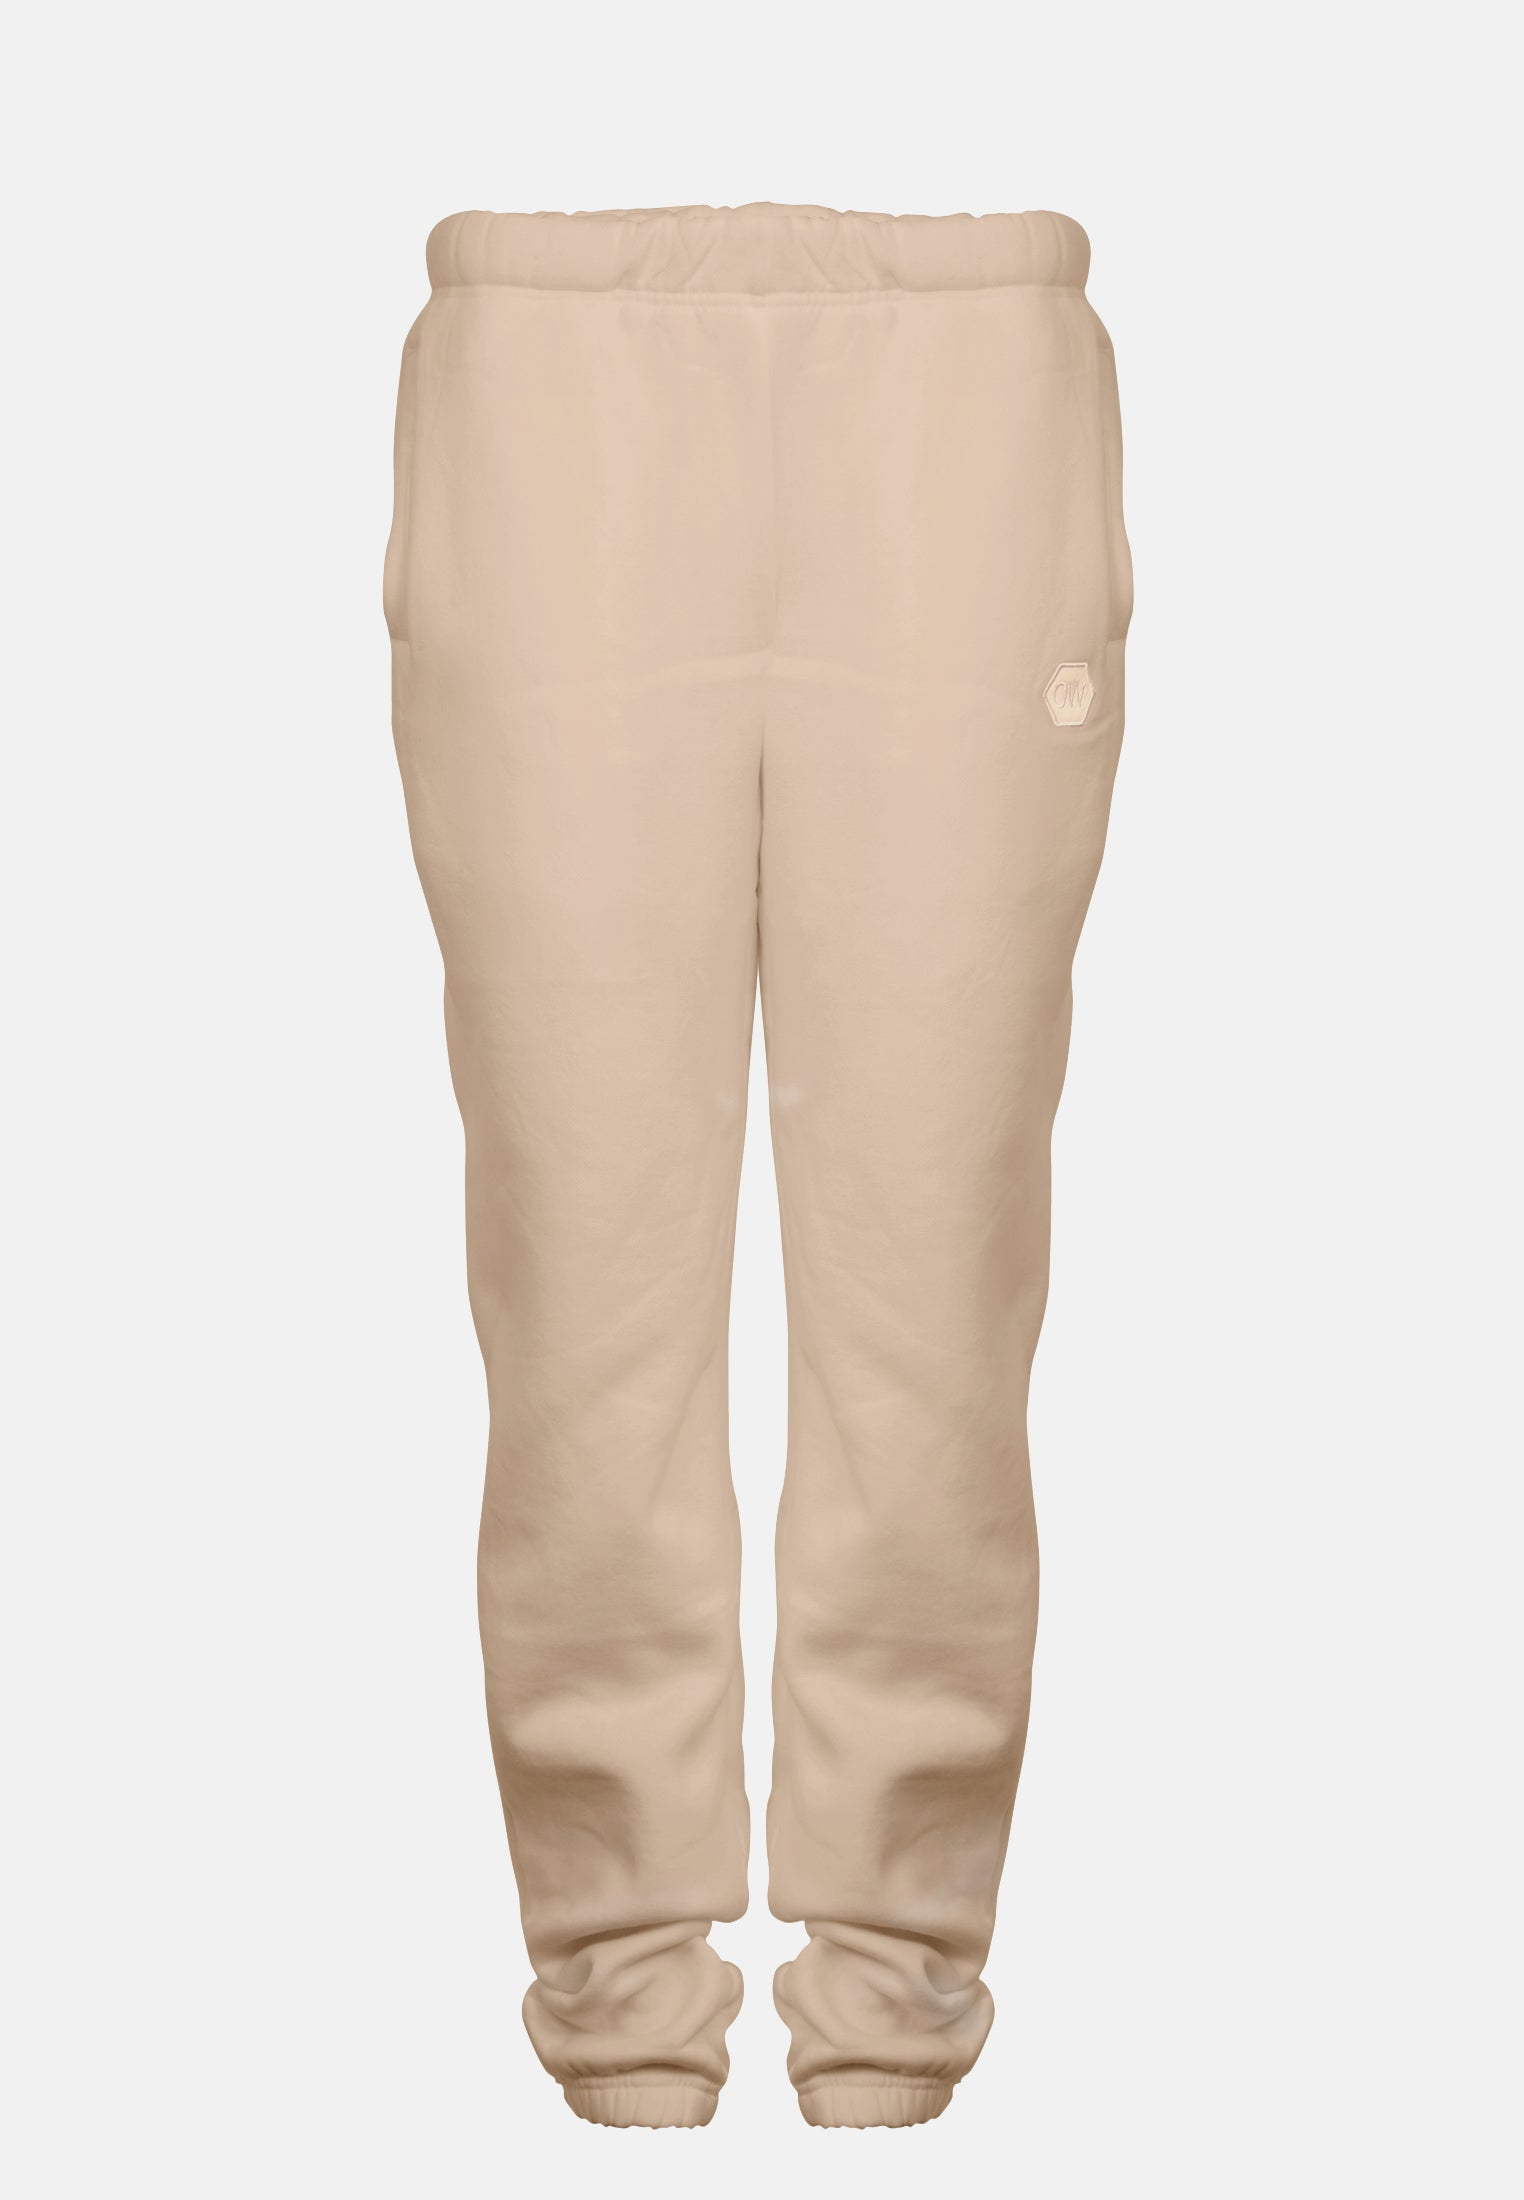 OW INTIMATES OW Bukser Pants 010 - Nude